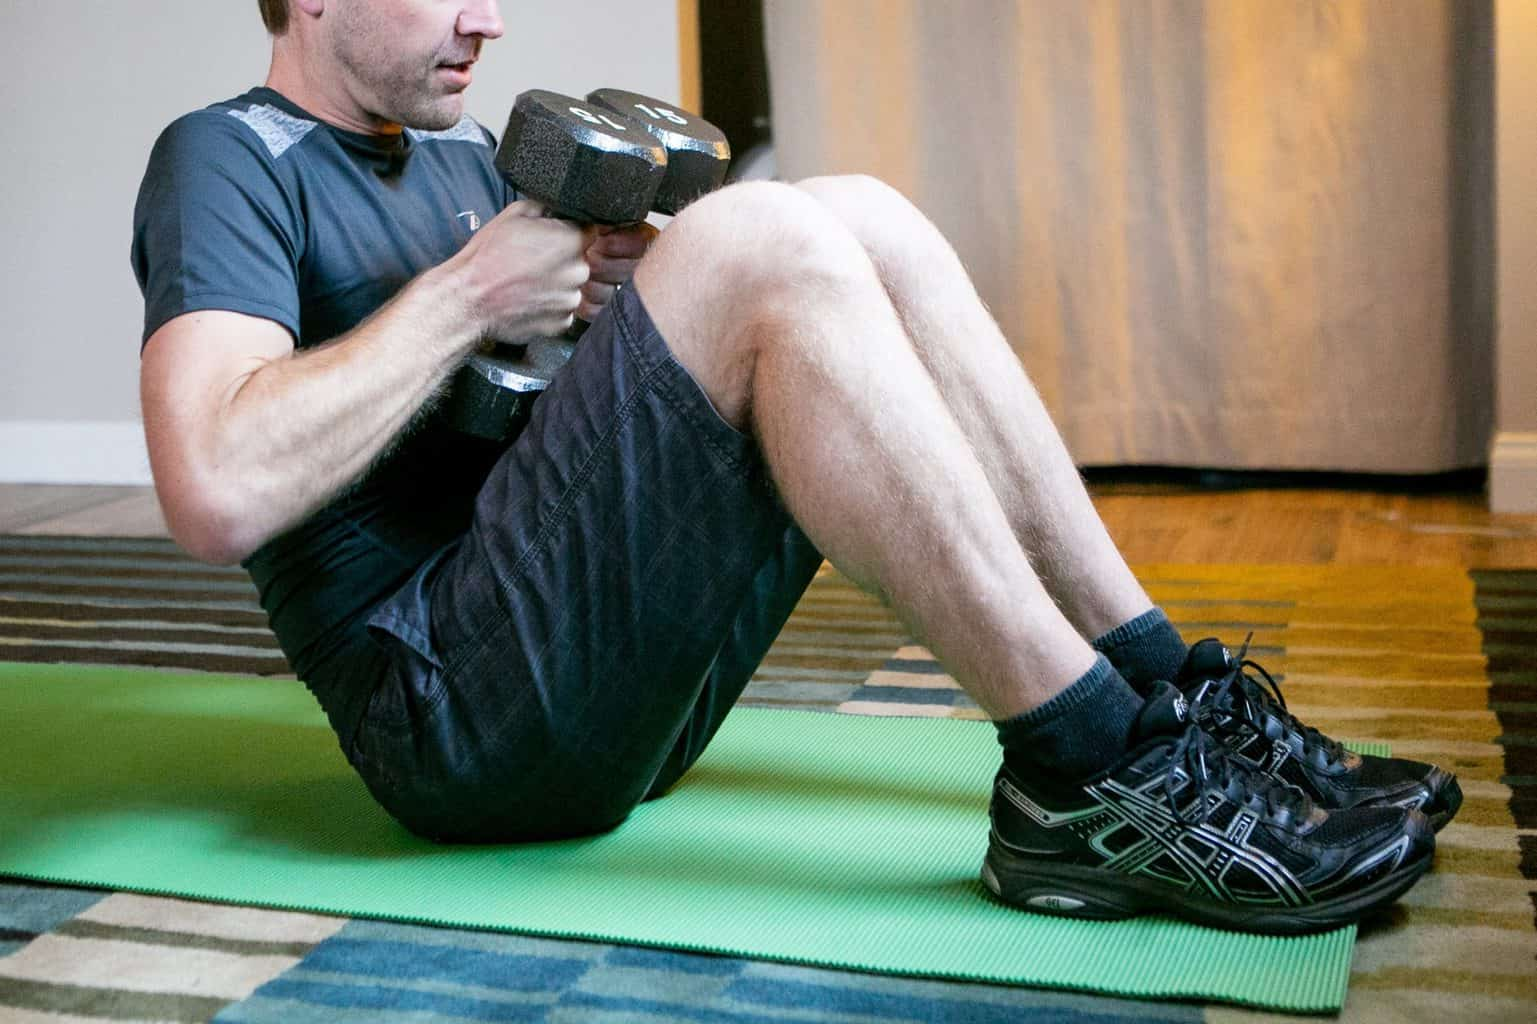 Man sitting down on the floor while holding dumbbells with each hand